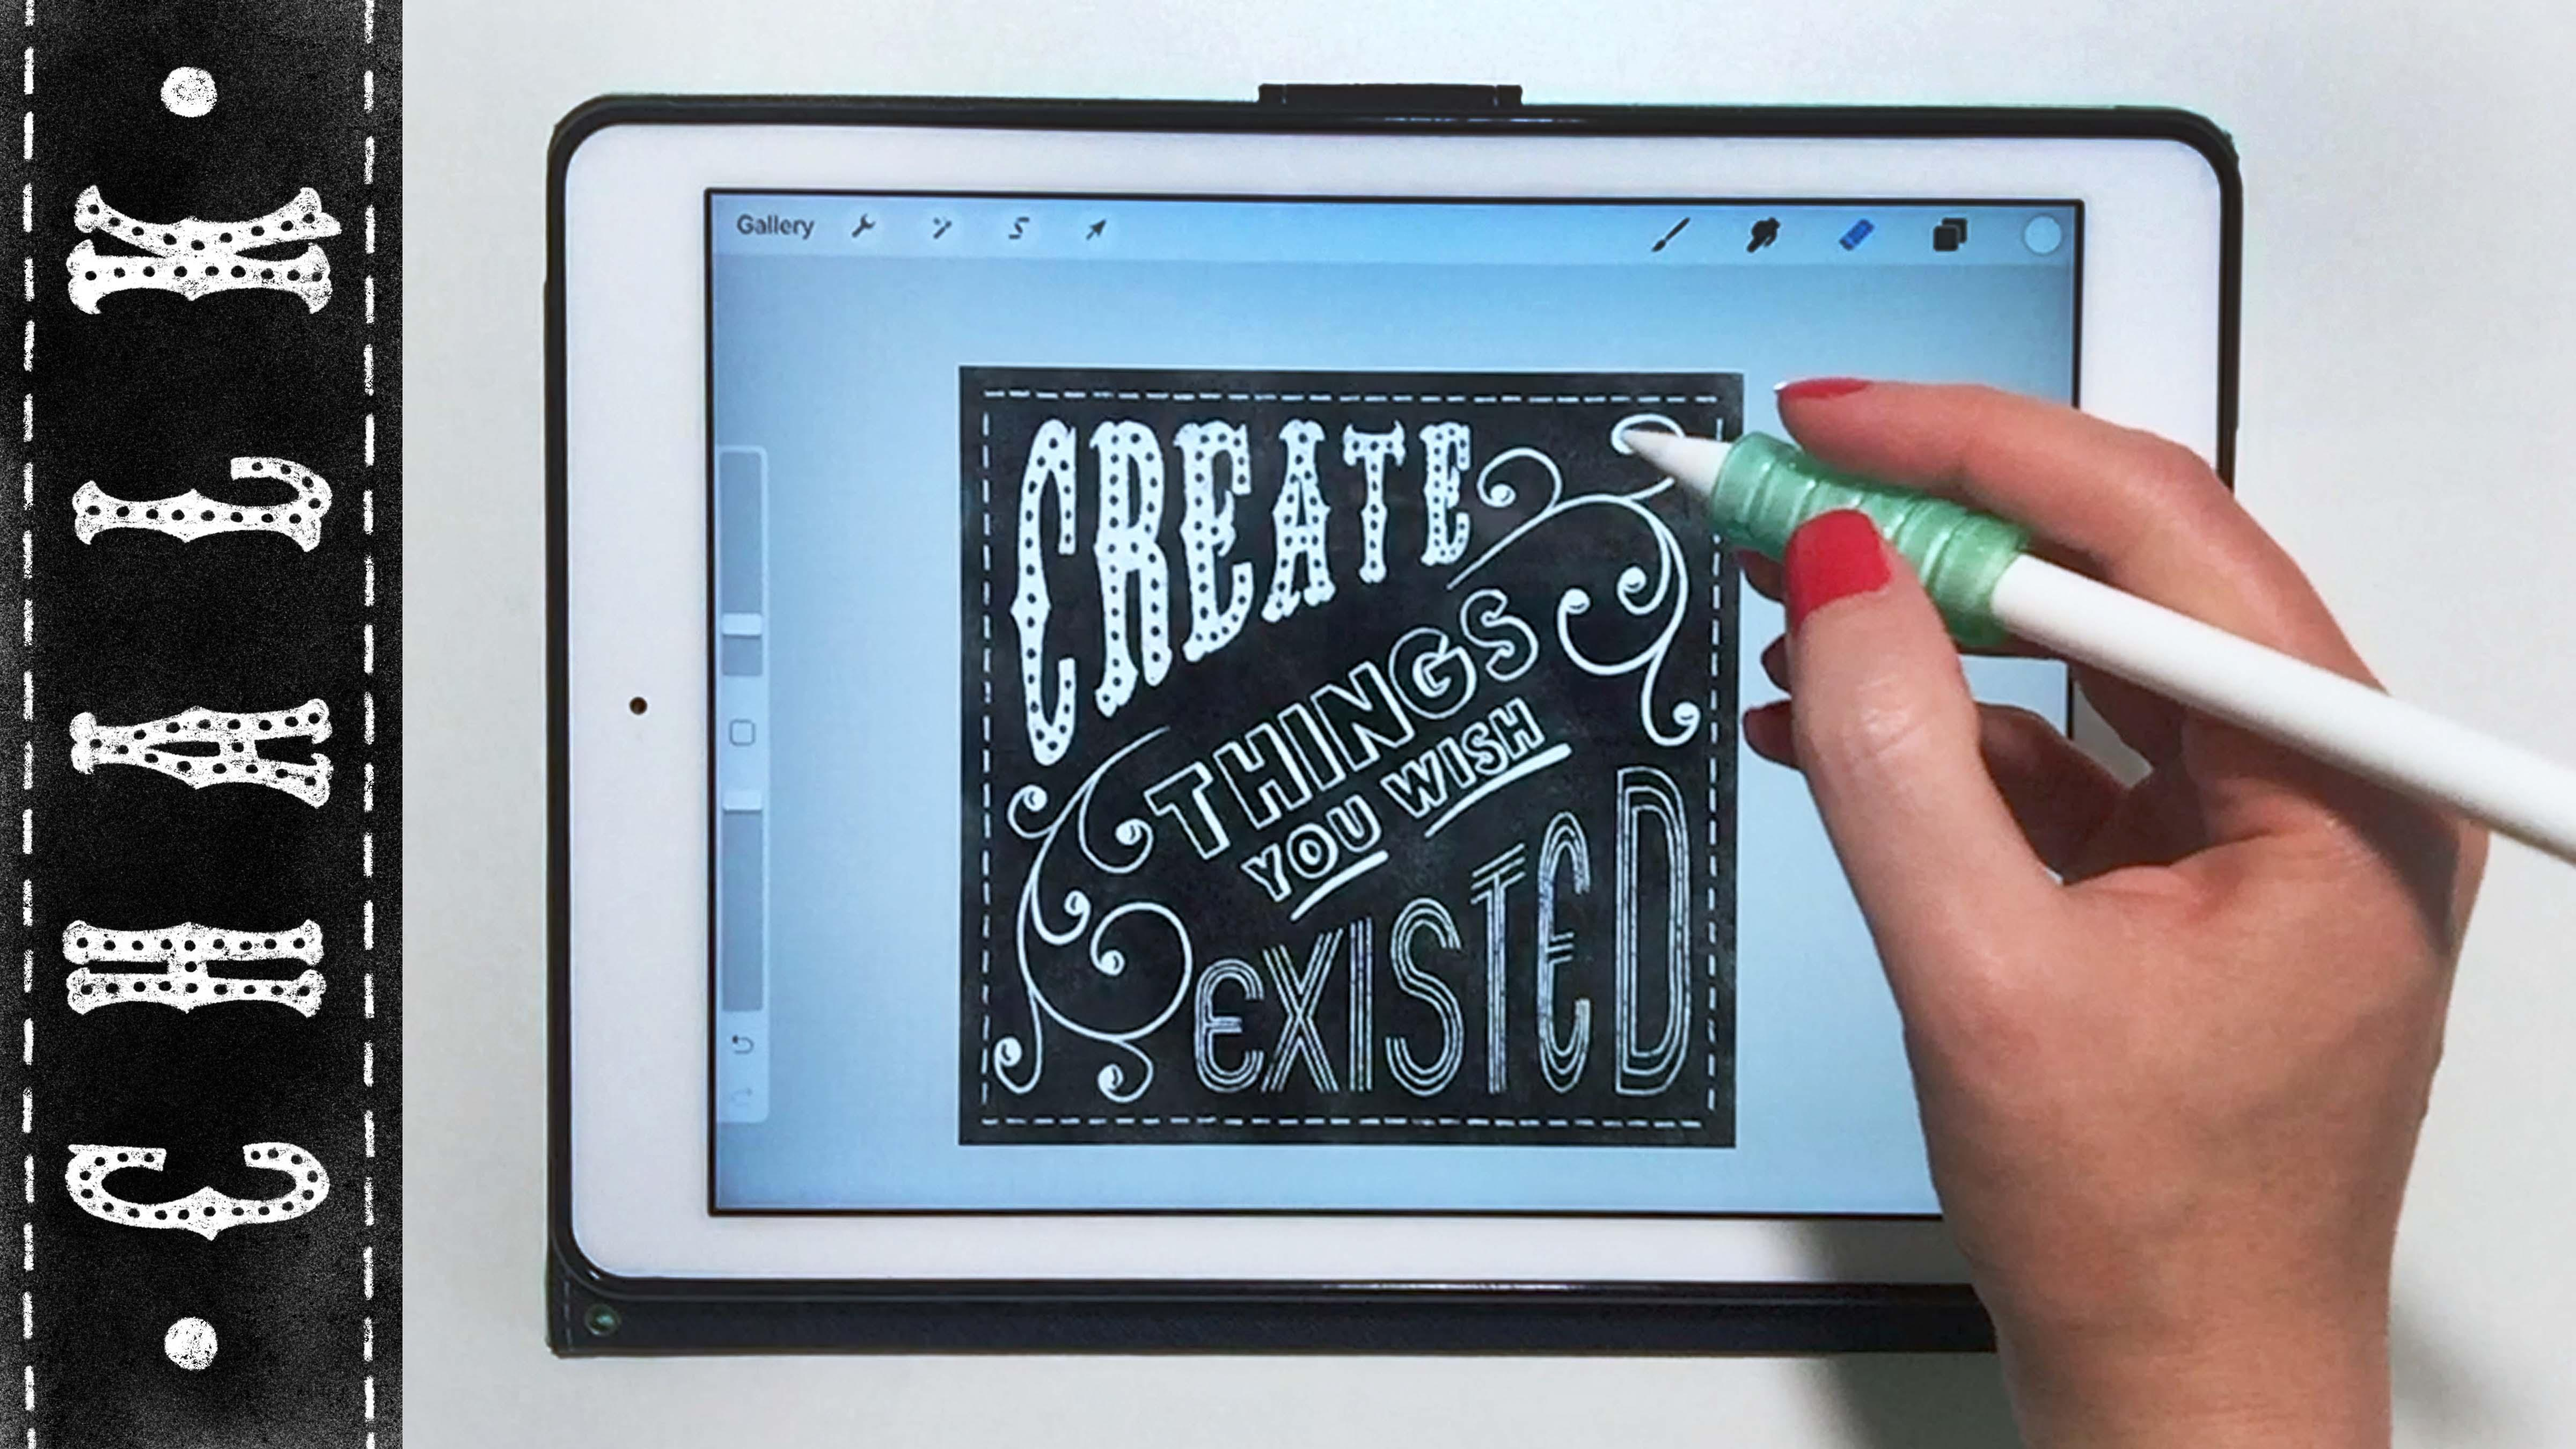 You How To Create Chalkboard Hand Lettering On Your IPad In Procreate When Take This Class Youll Get 11 Free Brushes 15 Templates